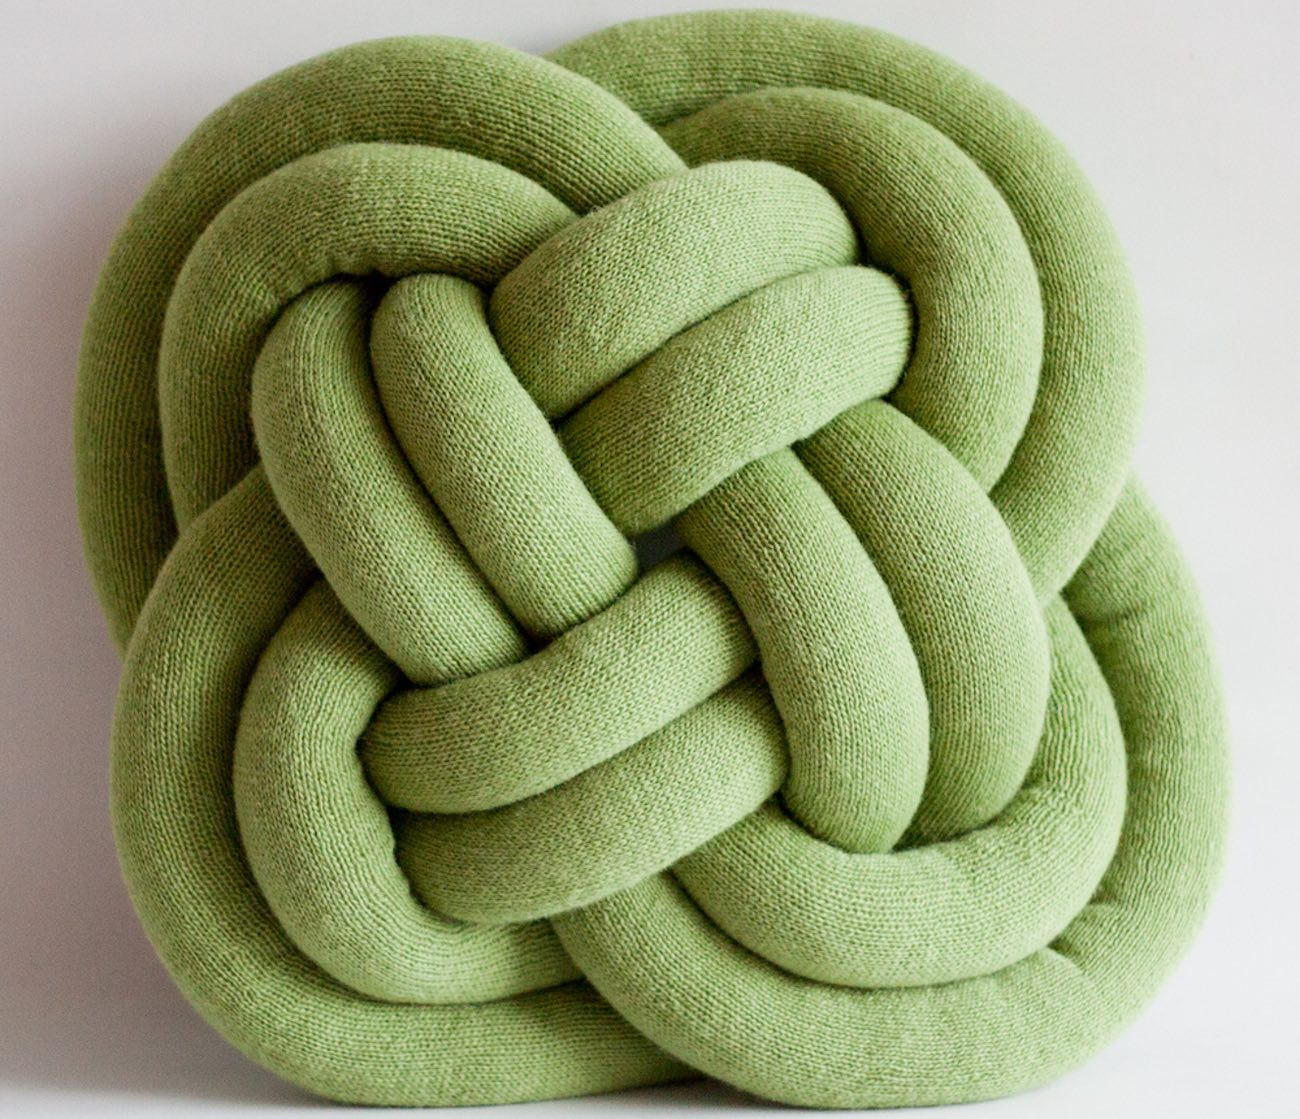 Notknot Pillow Cosy Oversized Knotted Pillow 187 Gadget Flow